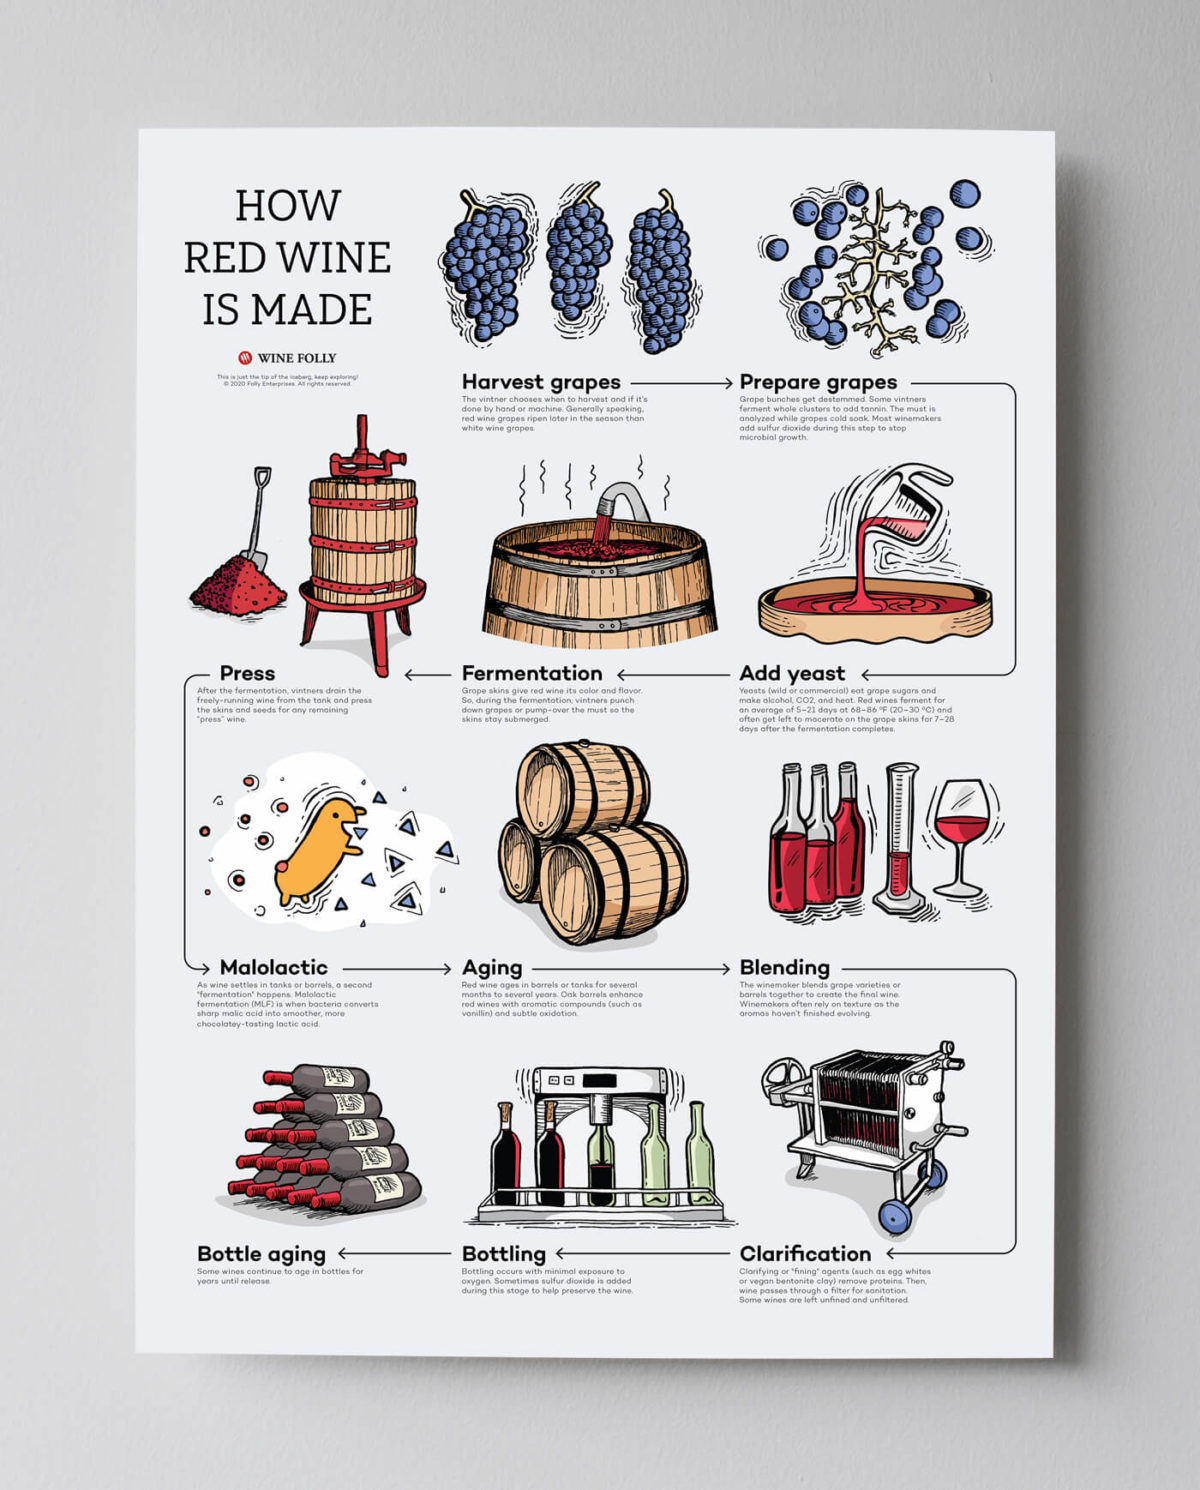 how-red-wine-is-made-poster-gray-bg